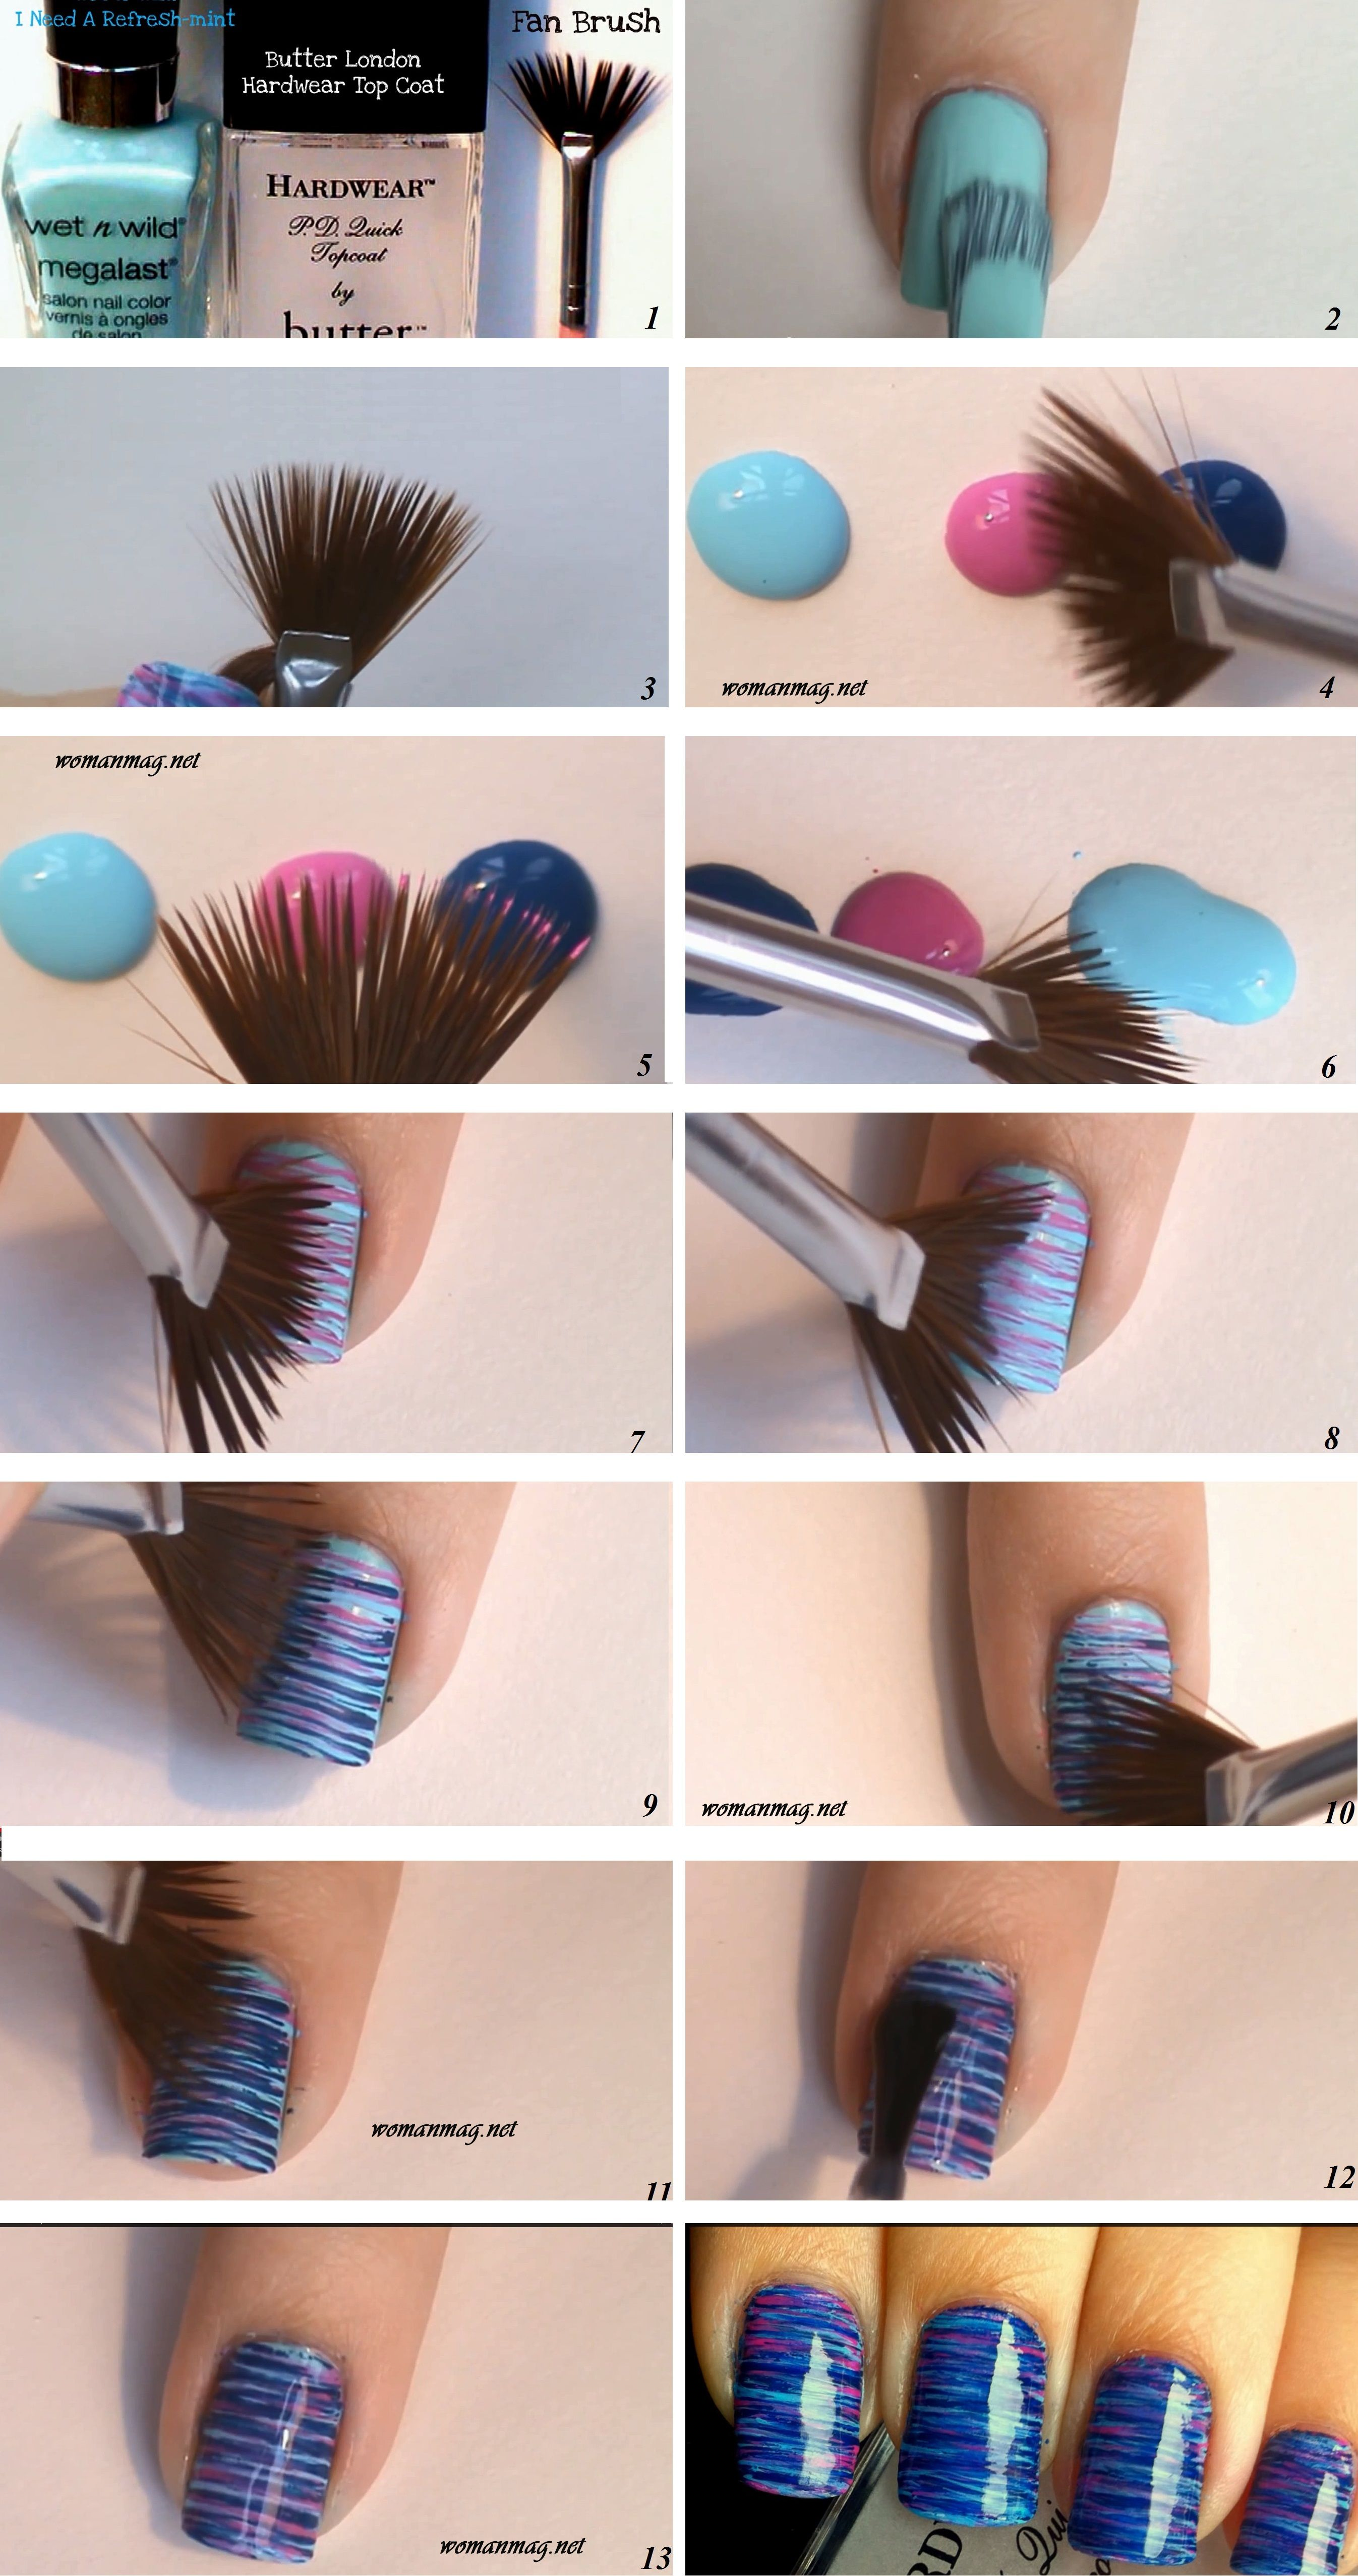 awesome Fan Brush Striped Nail Art - Click on the image to see more ...